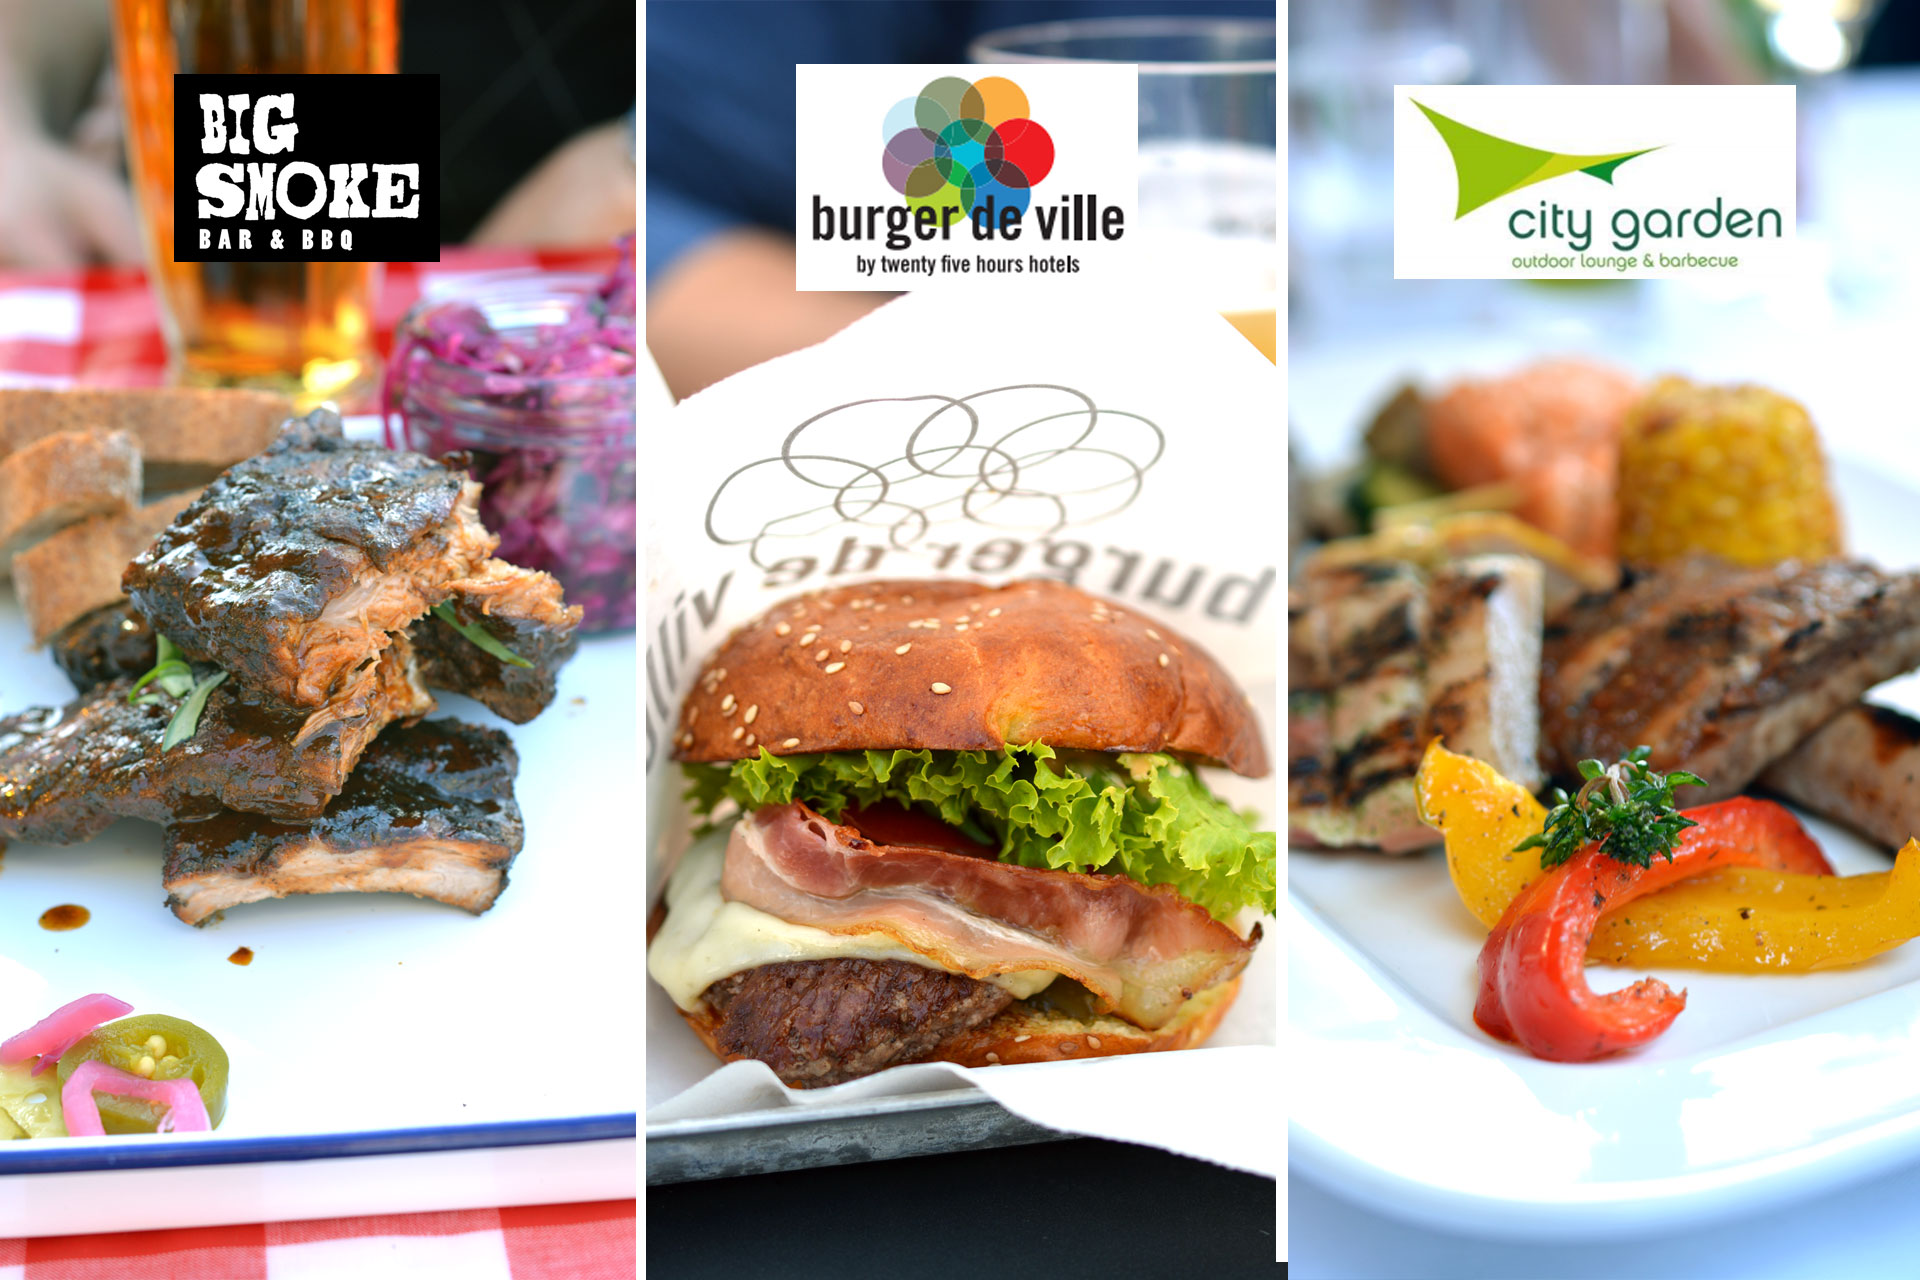 Big Smoke, Burger de Ville, City Garden